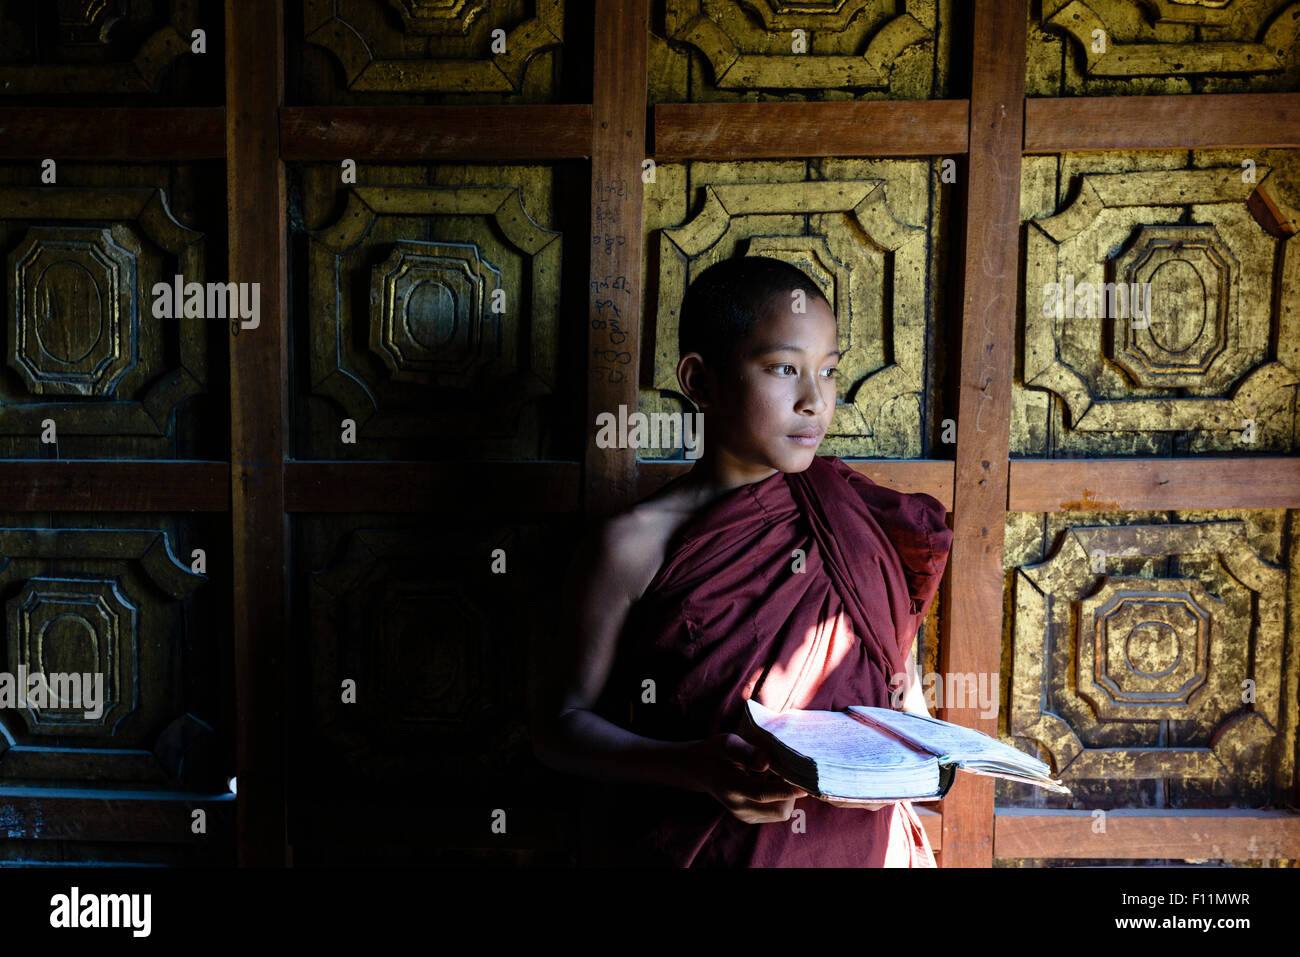 Asian monk-in-training holding book in temple - Stock Image